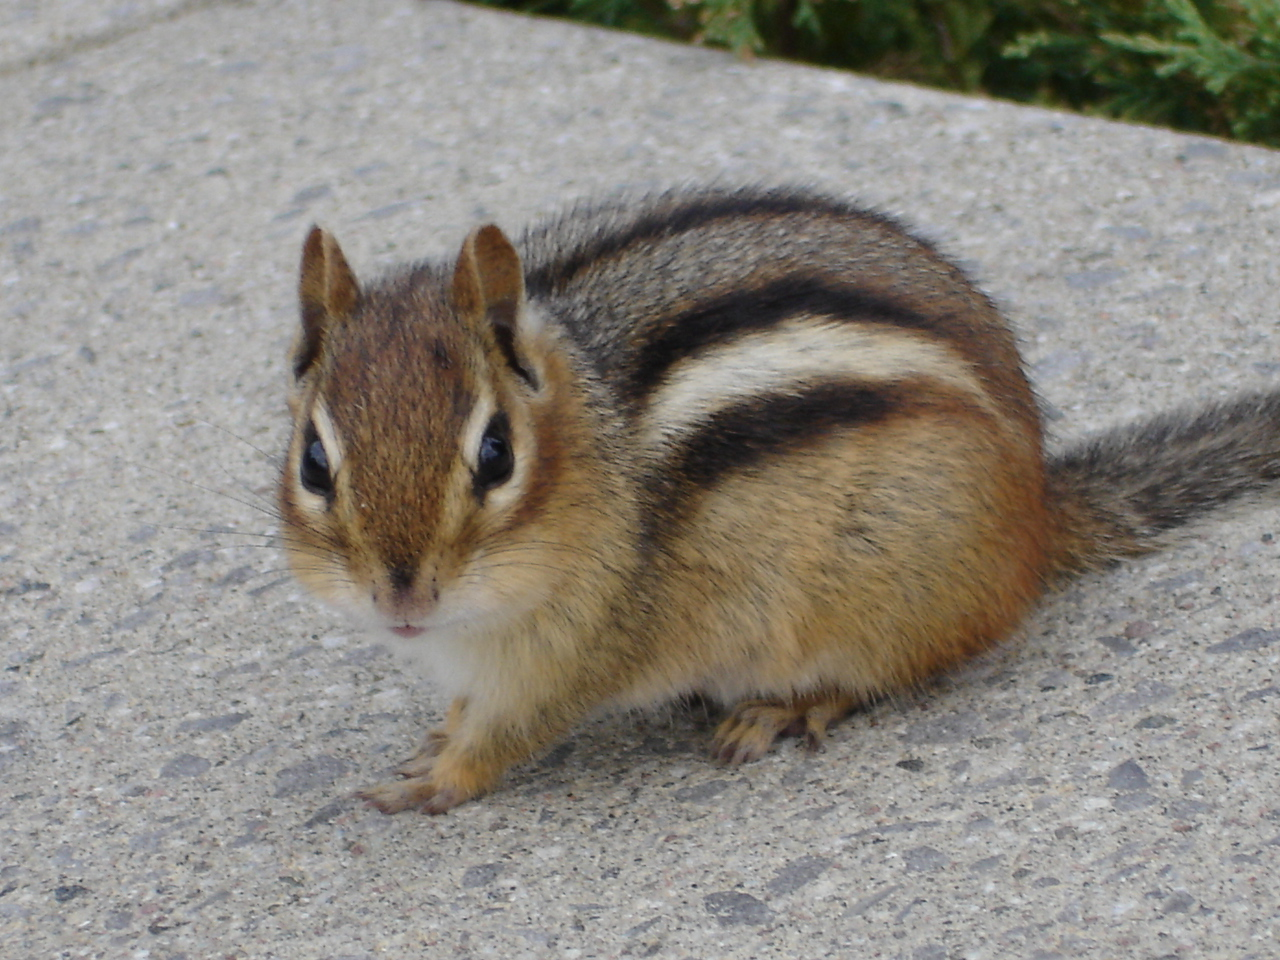 Lessons from a Chipmunk